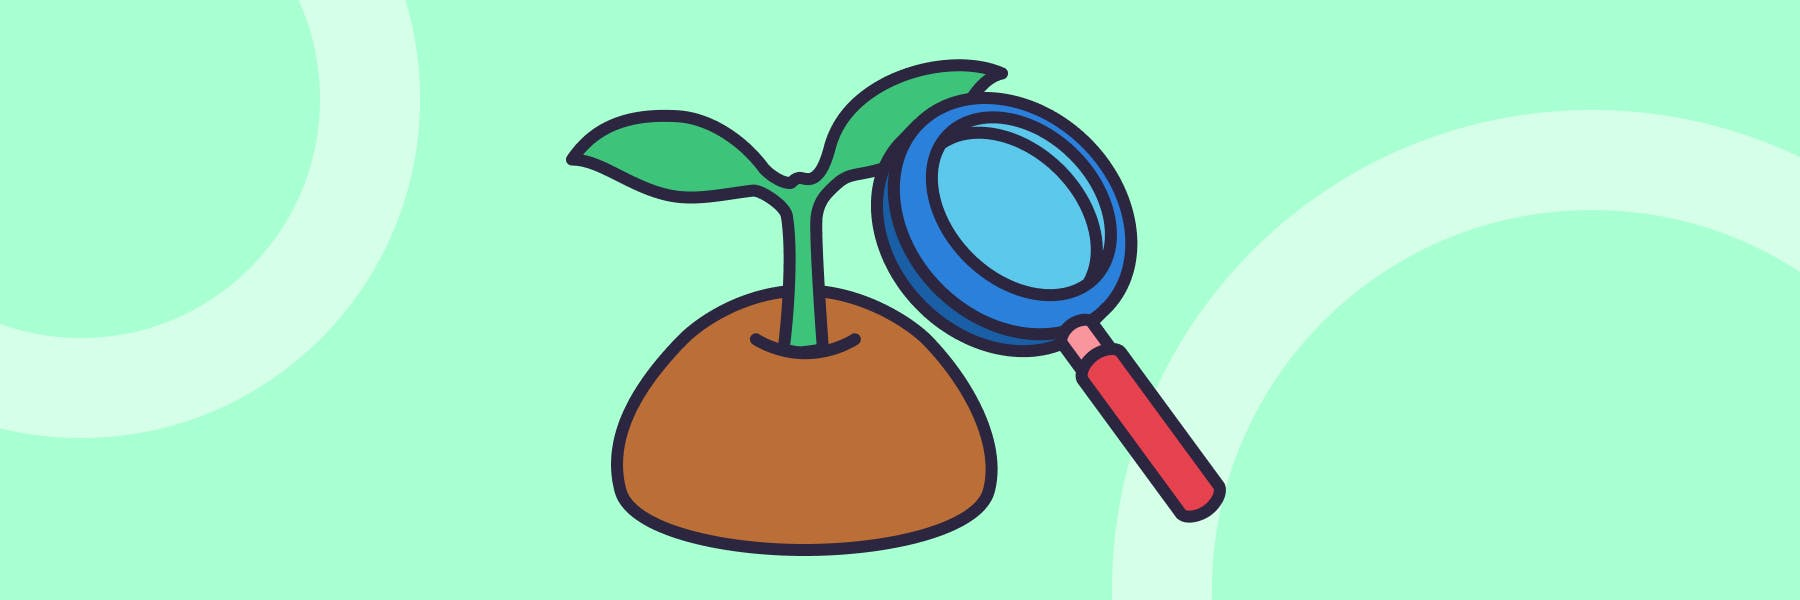 An illustration of a magnifying glass inspecting a growing seedling